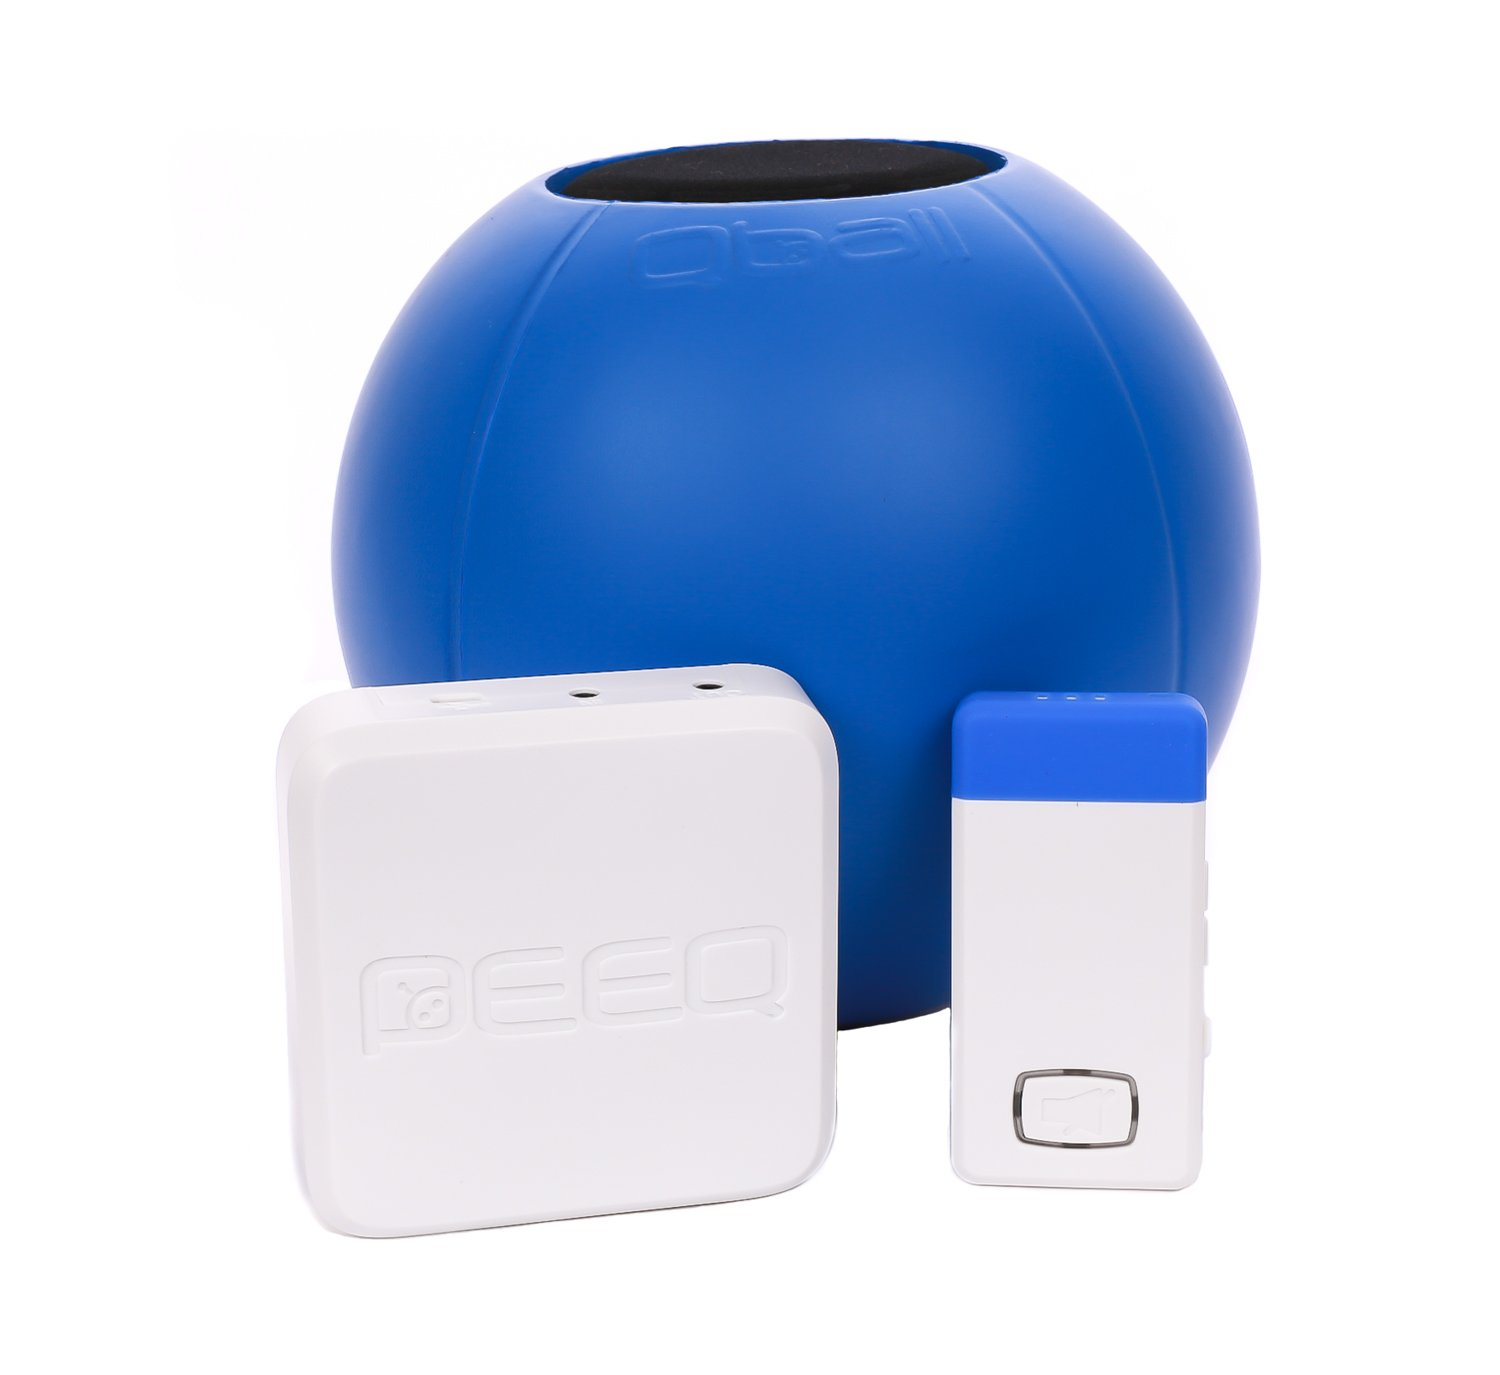 Qball Throwable Microphone - 2.4Ghz up to 75 ft range